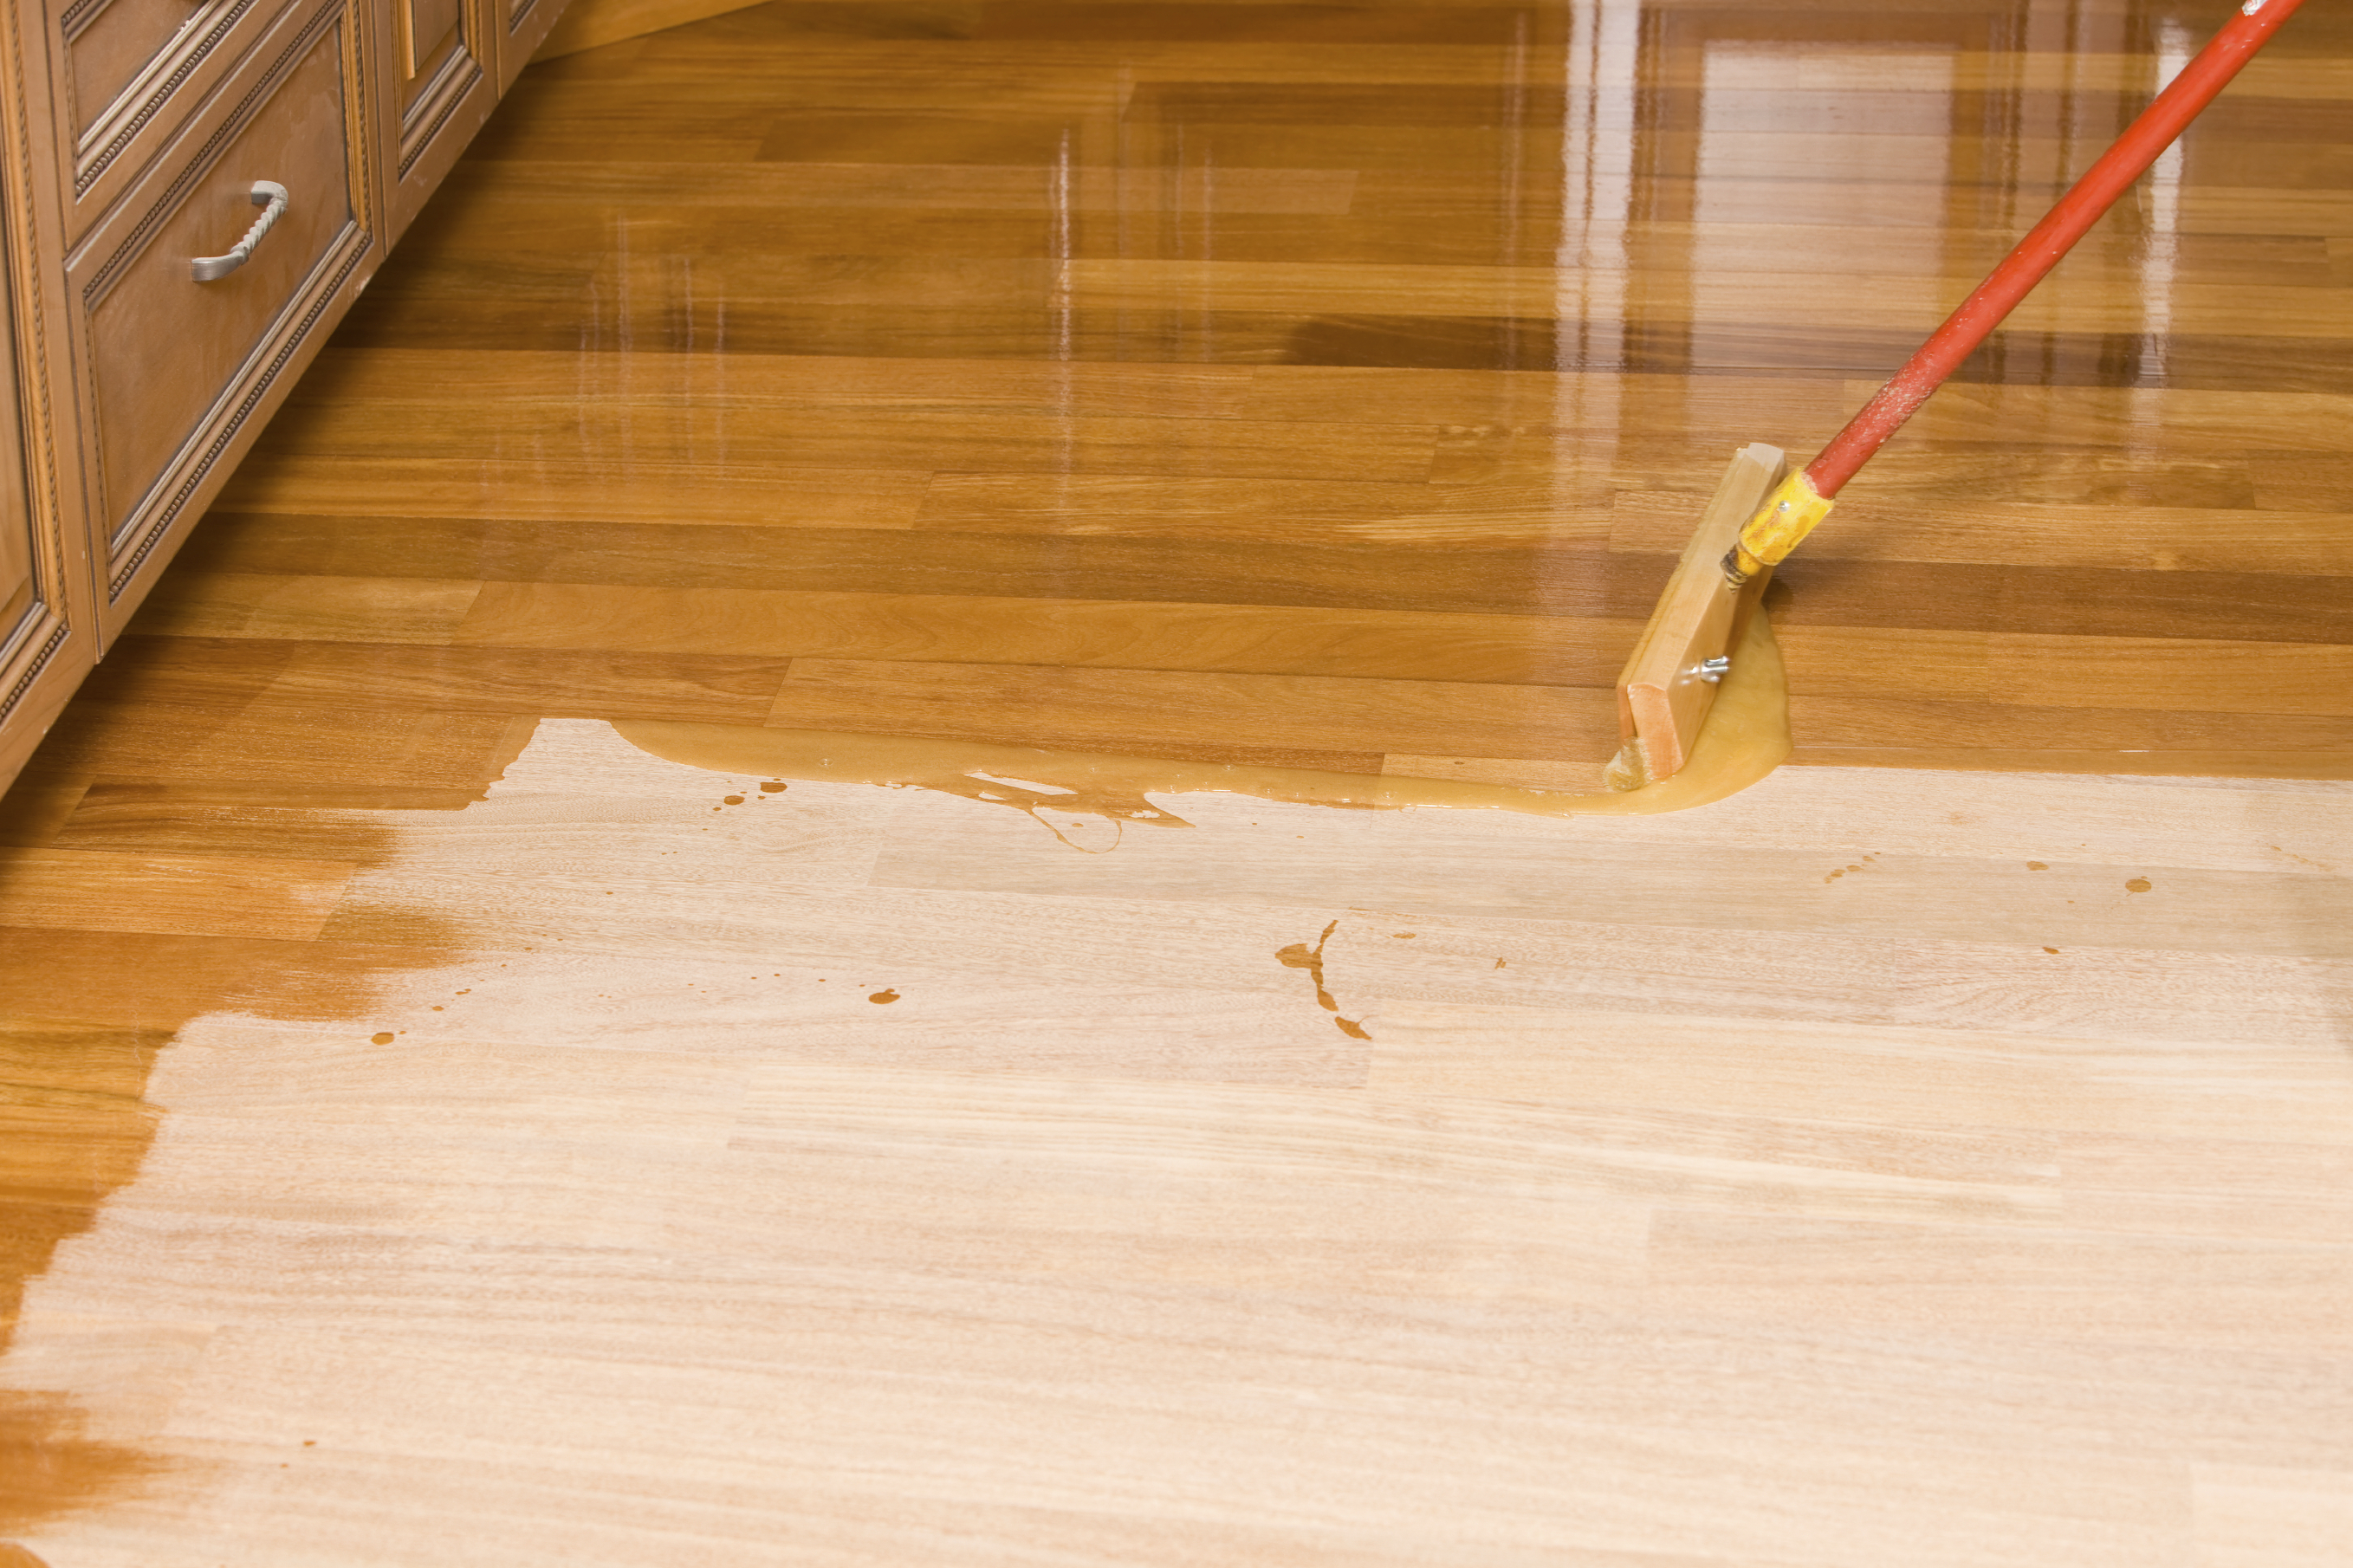 hardwood floor sanding by hand